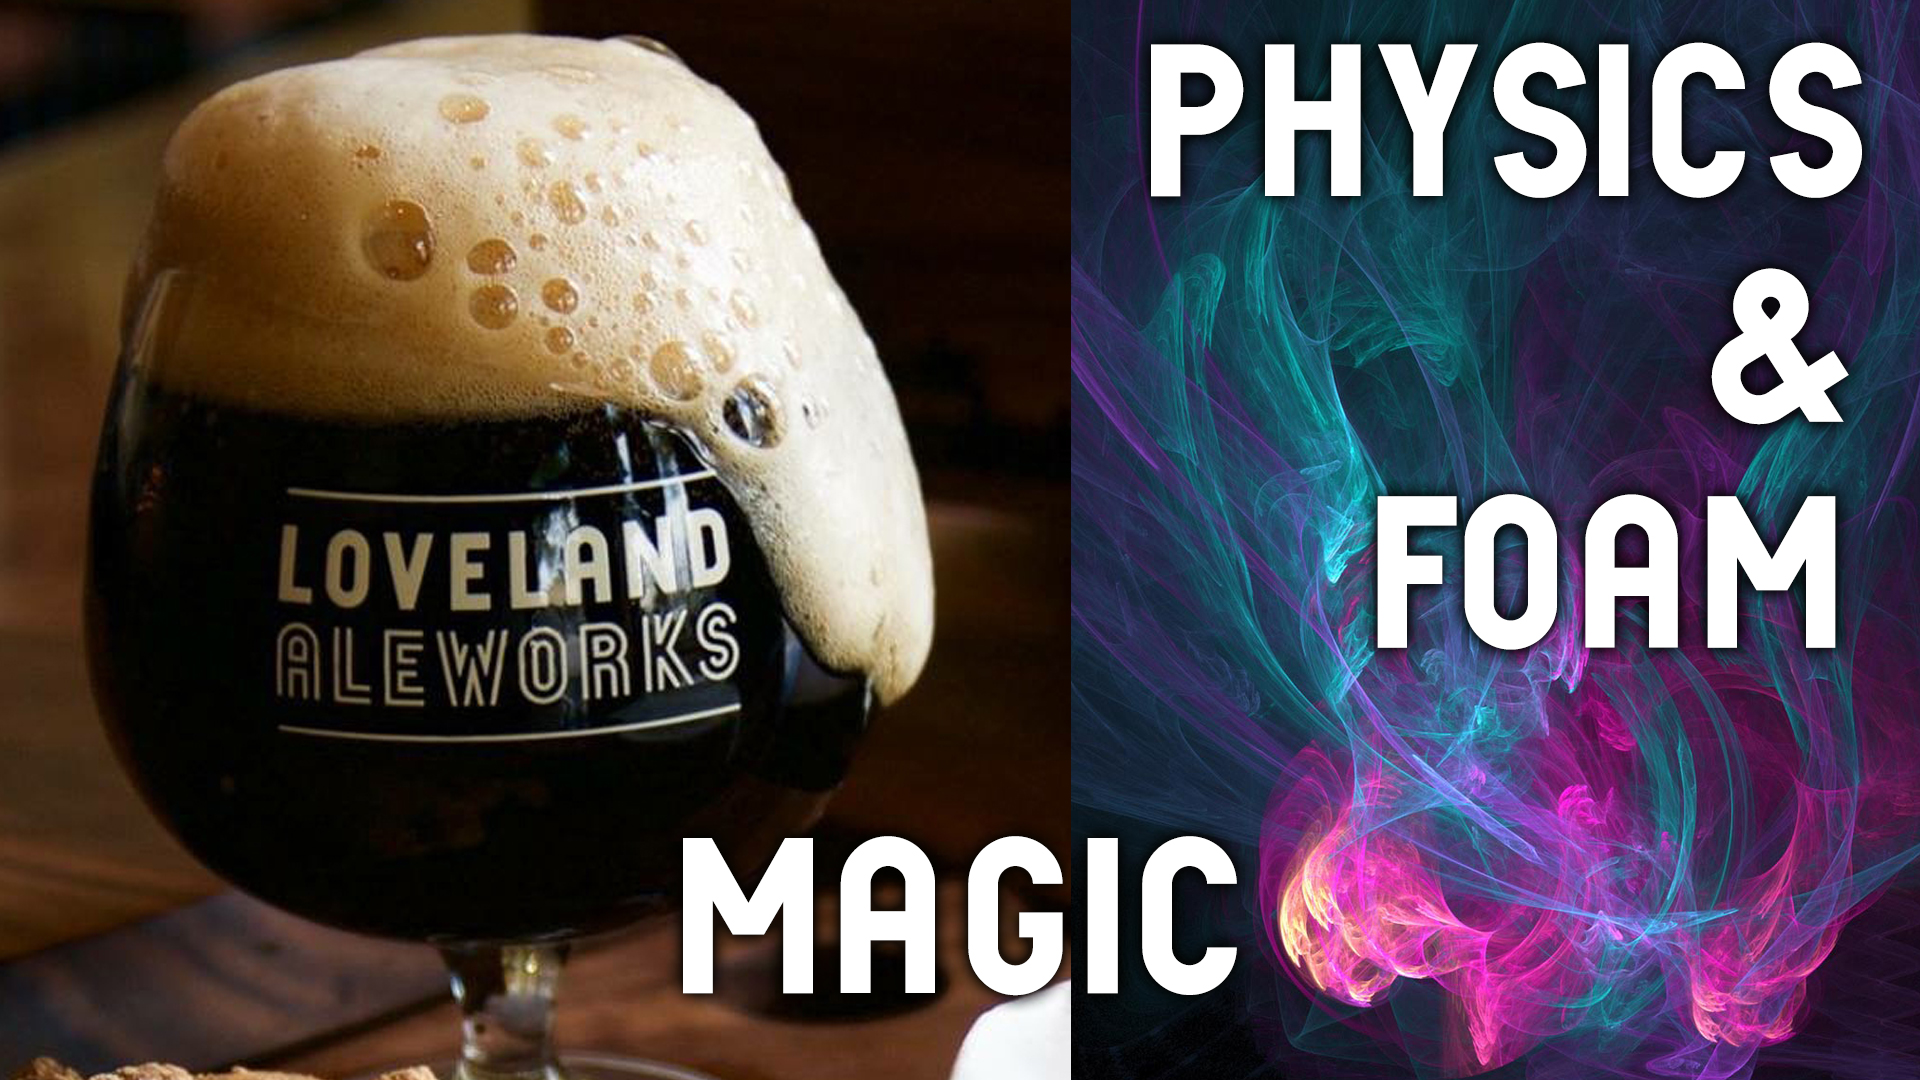 MAGIC-PHYSICS-EVENT.jpg